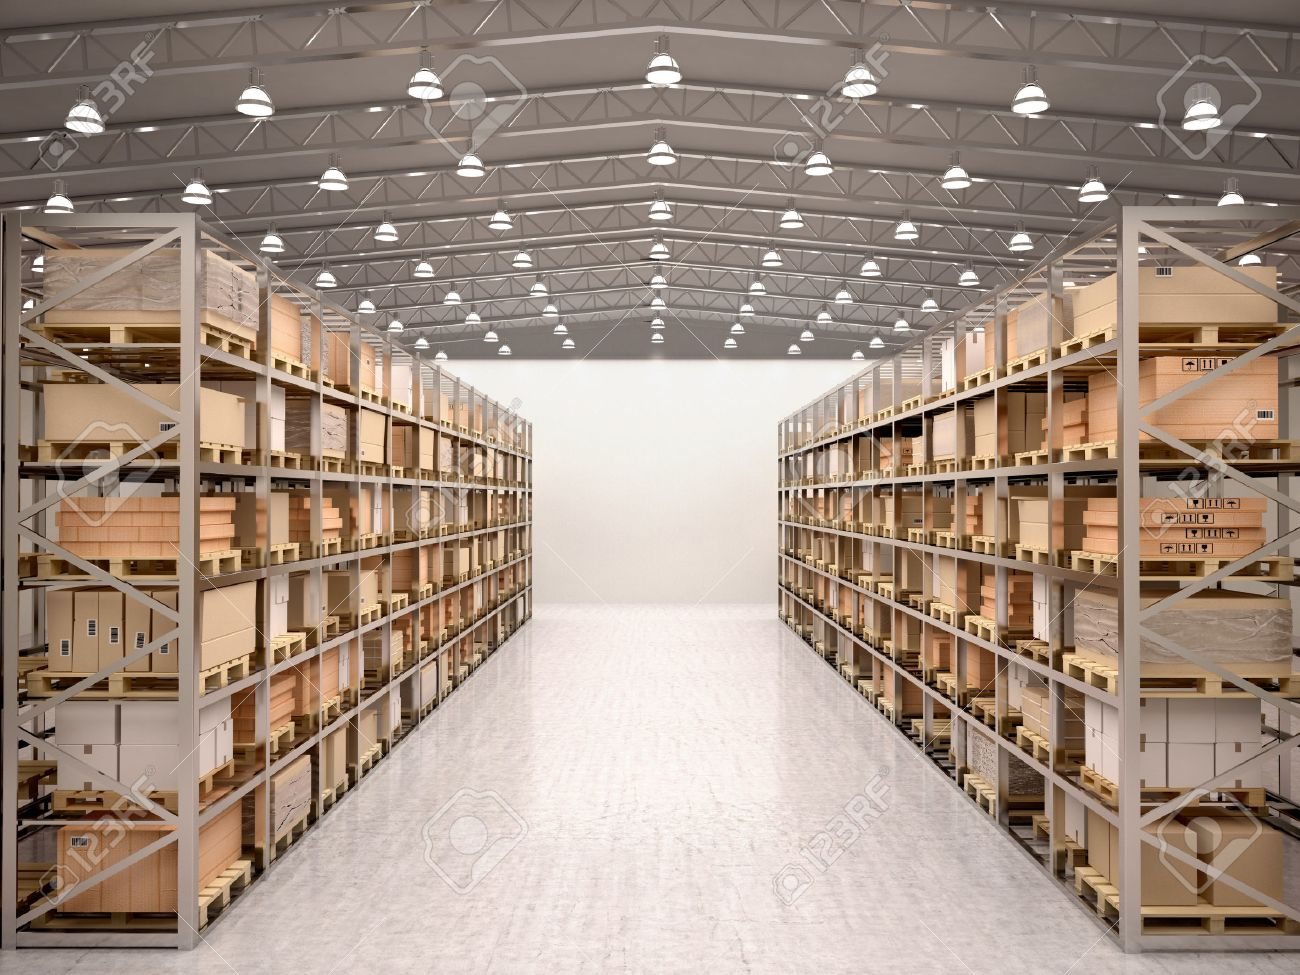 3d illustration of rows of shelves with boxes in modern warehouse